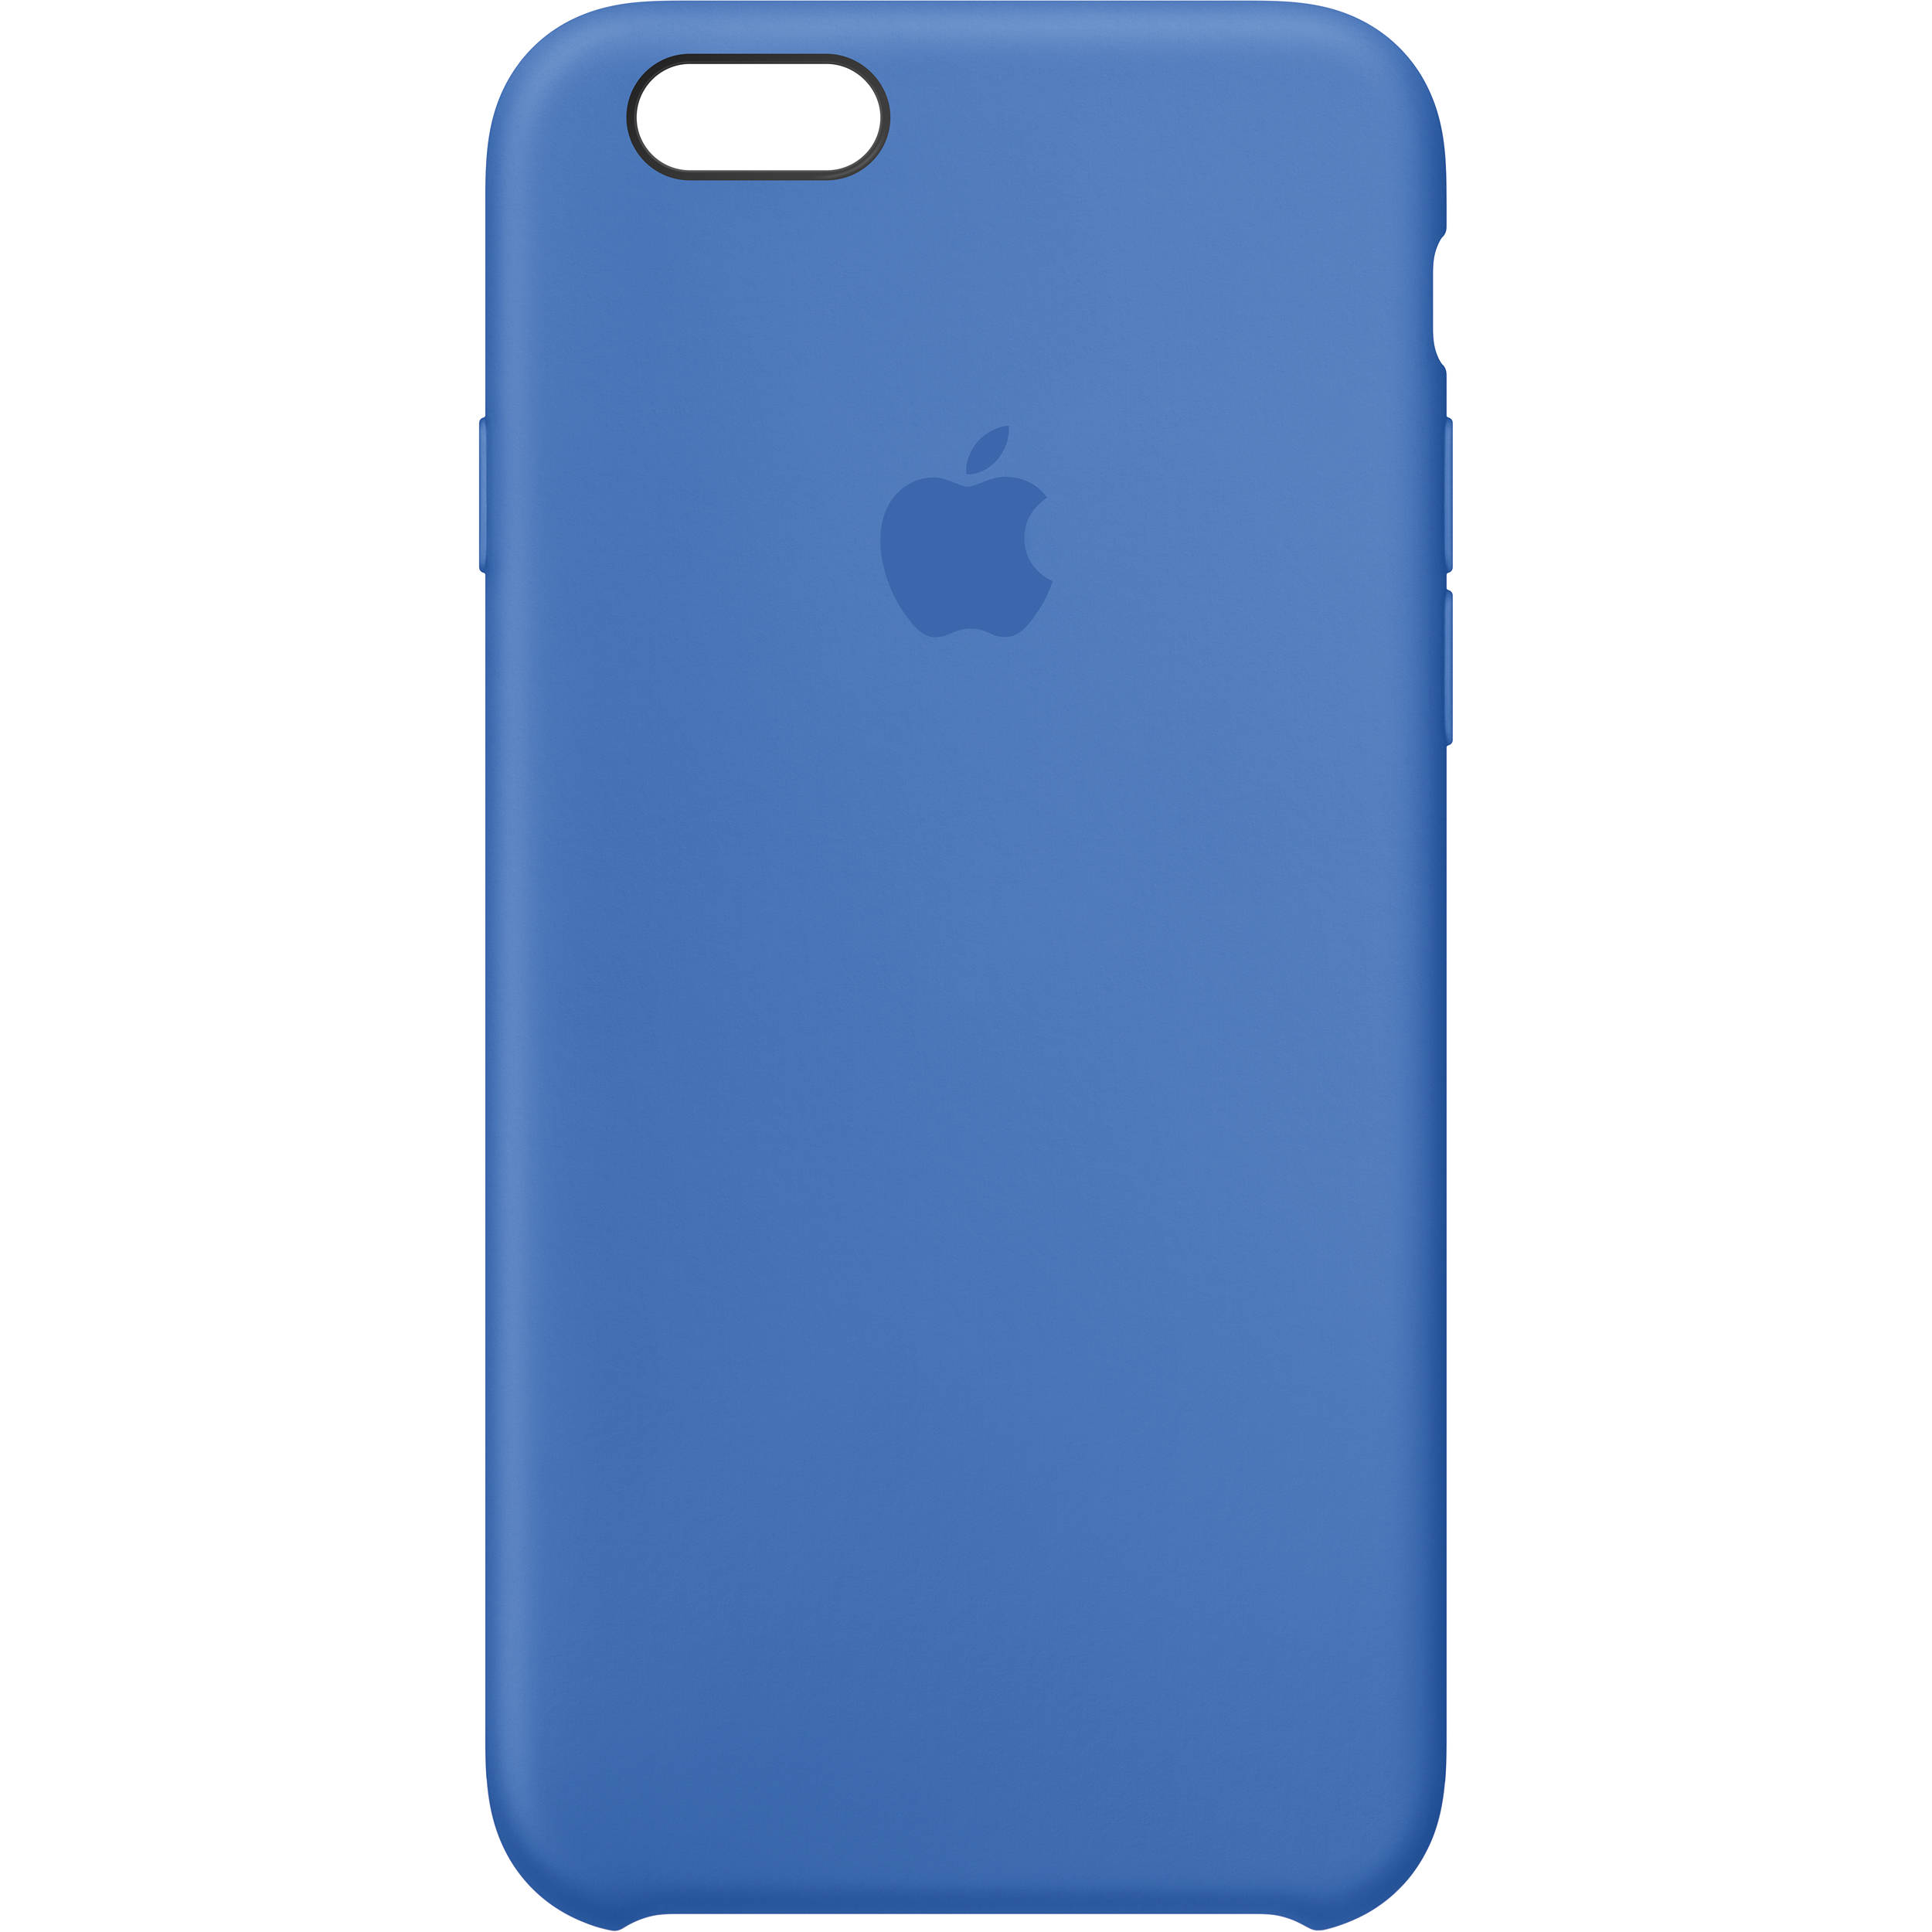 super popular 0339f 00a5c Apple iPhone 6/6s Silicone Case (Royal Blue)